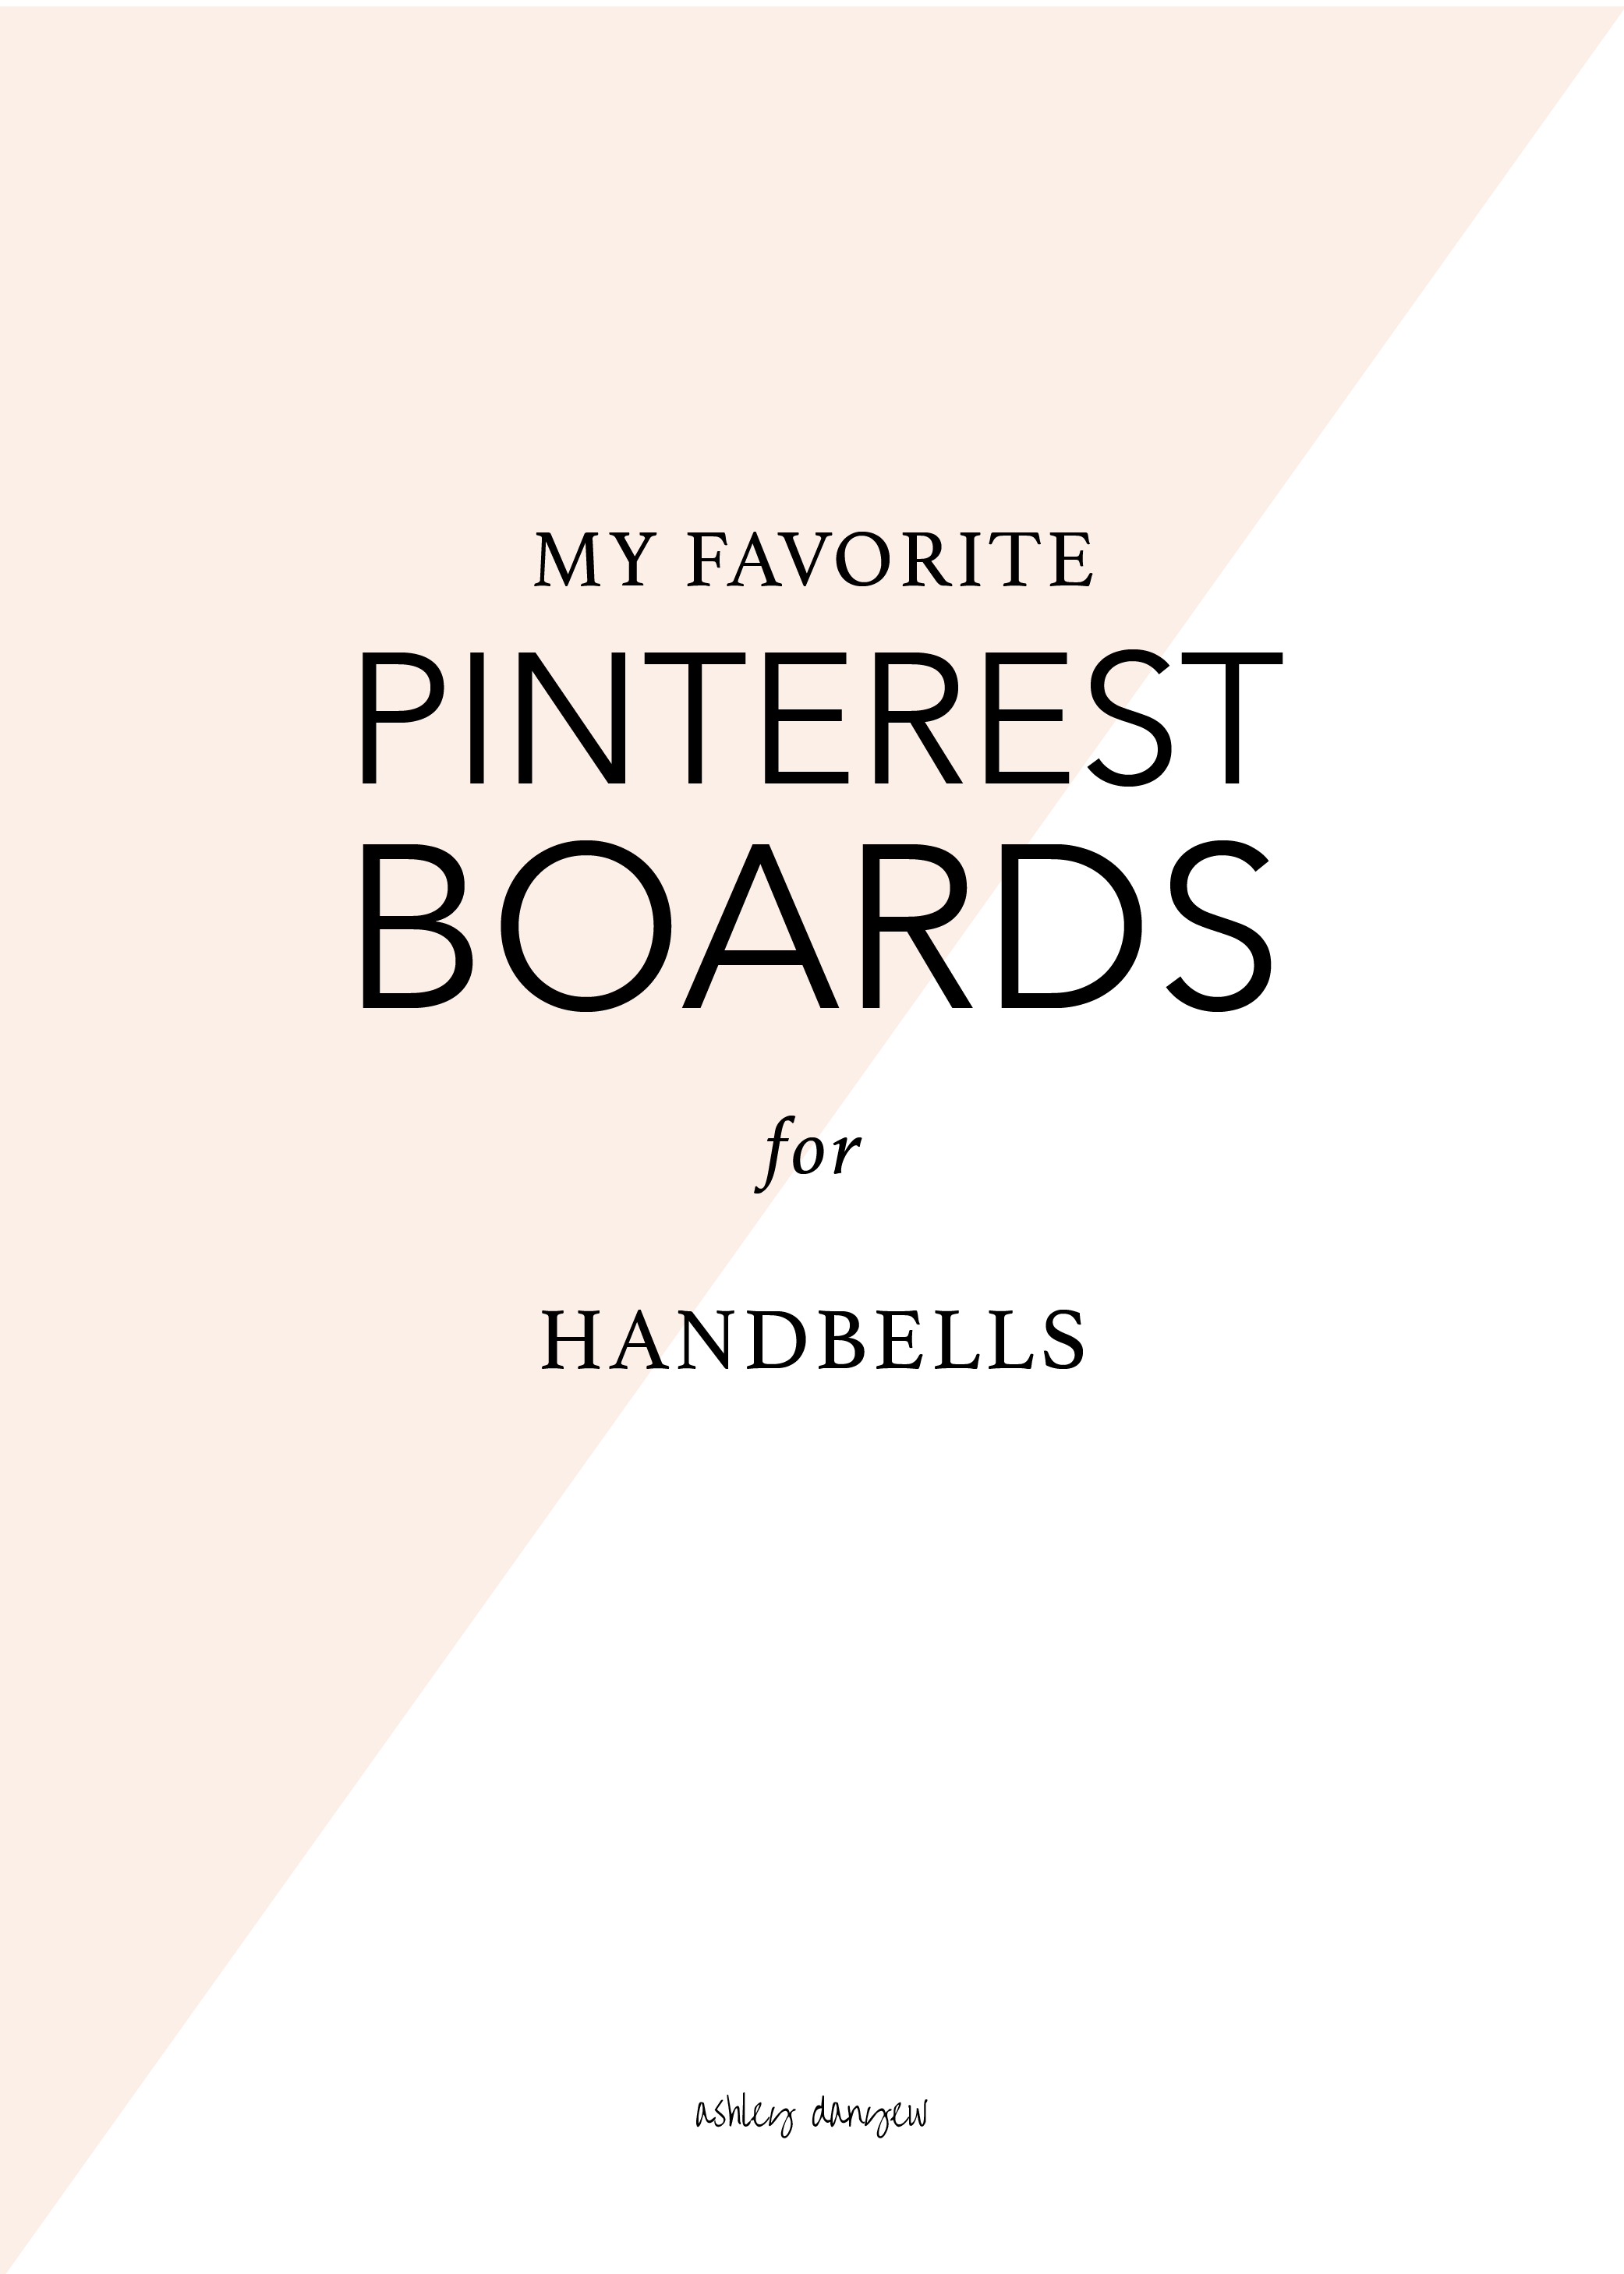 Copy of My Favorite Pinterest Boards for Handbells